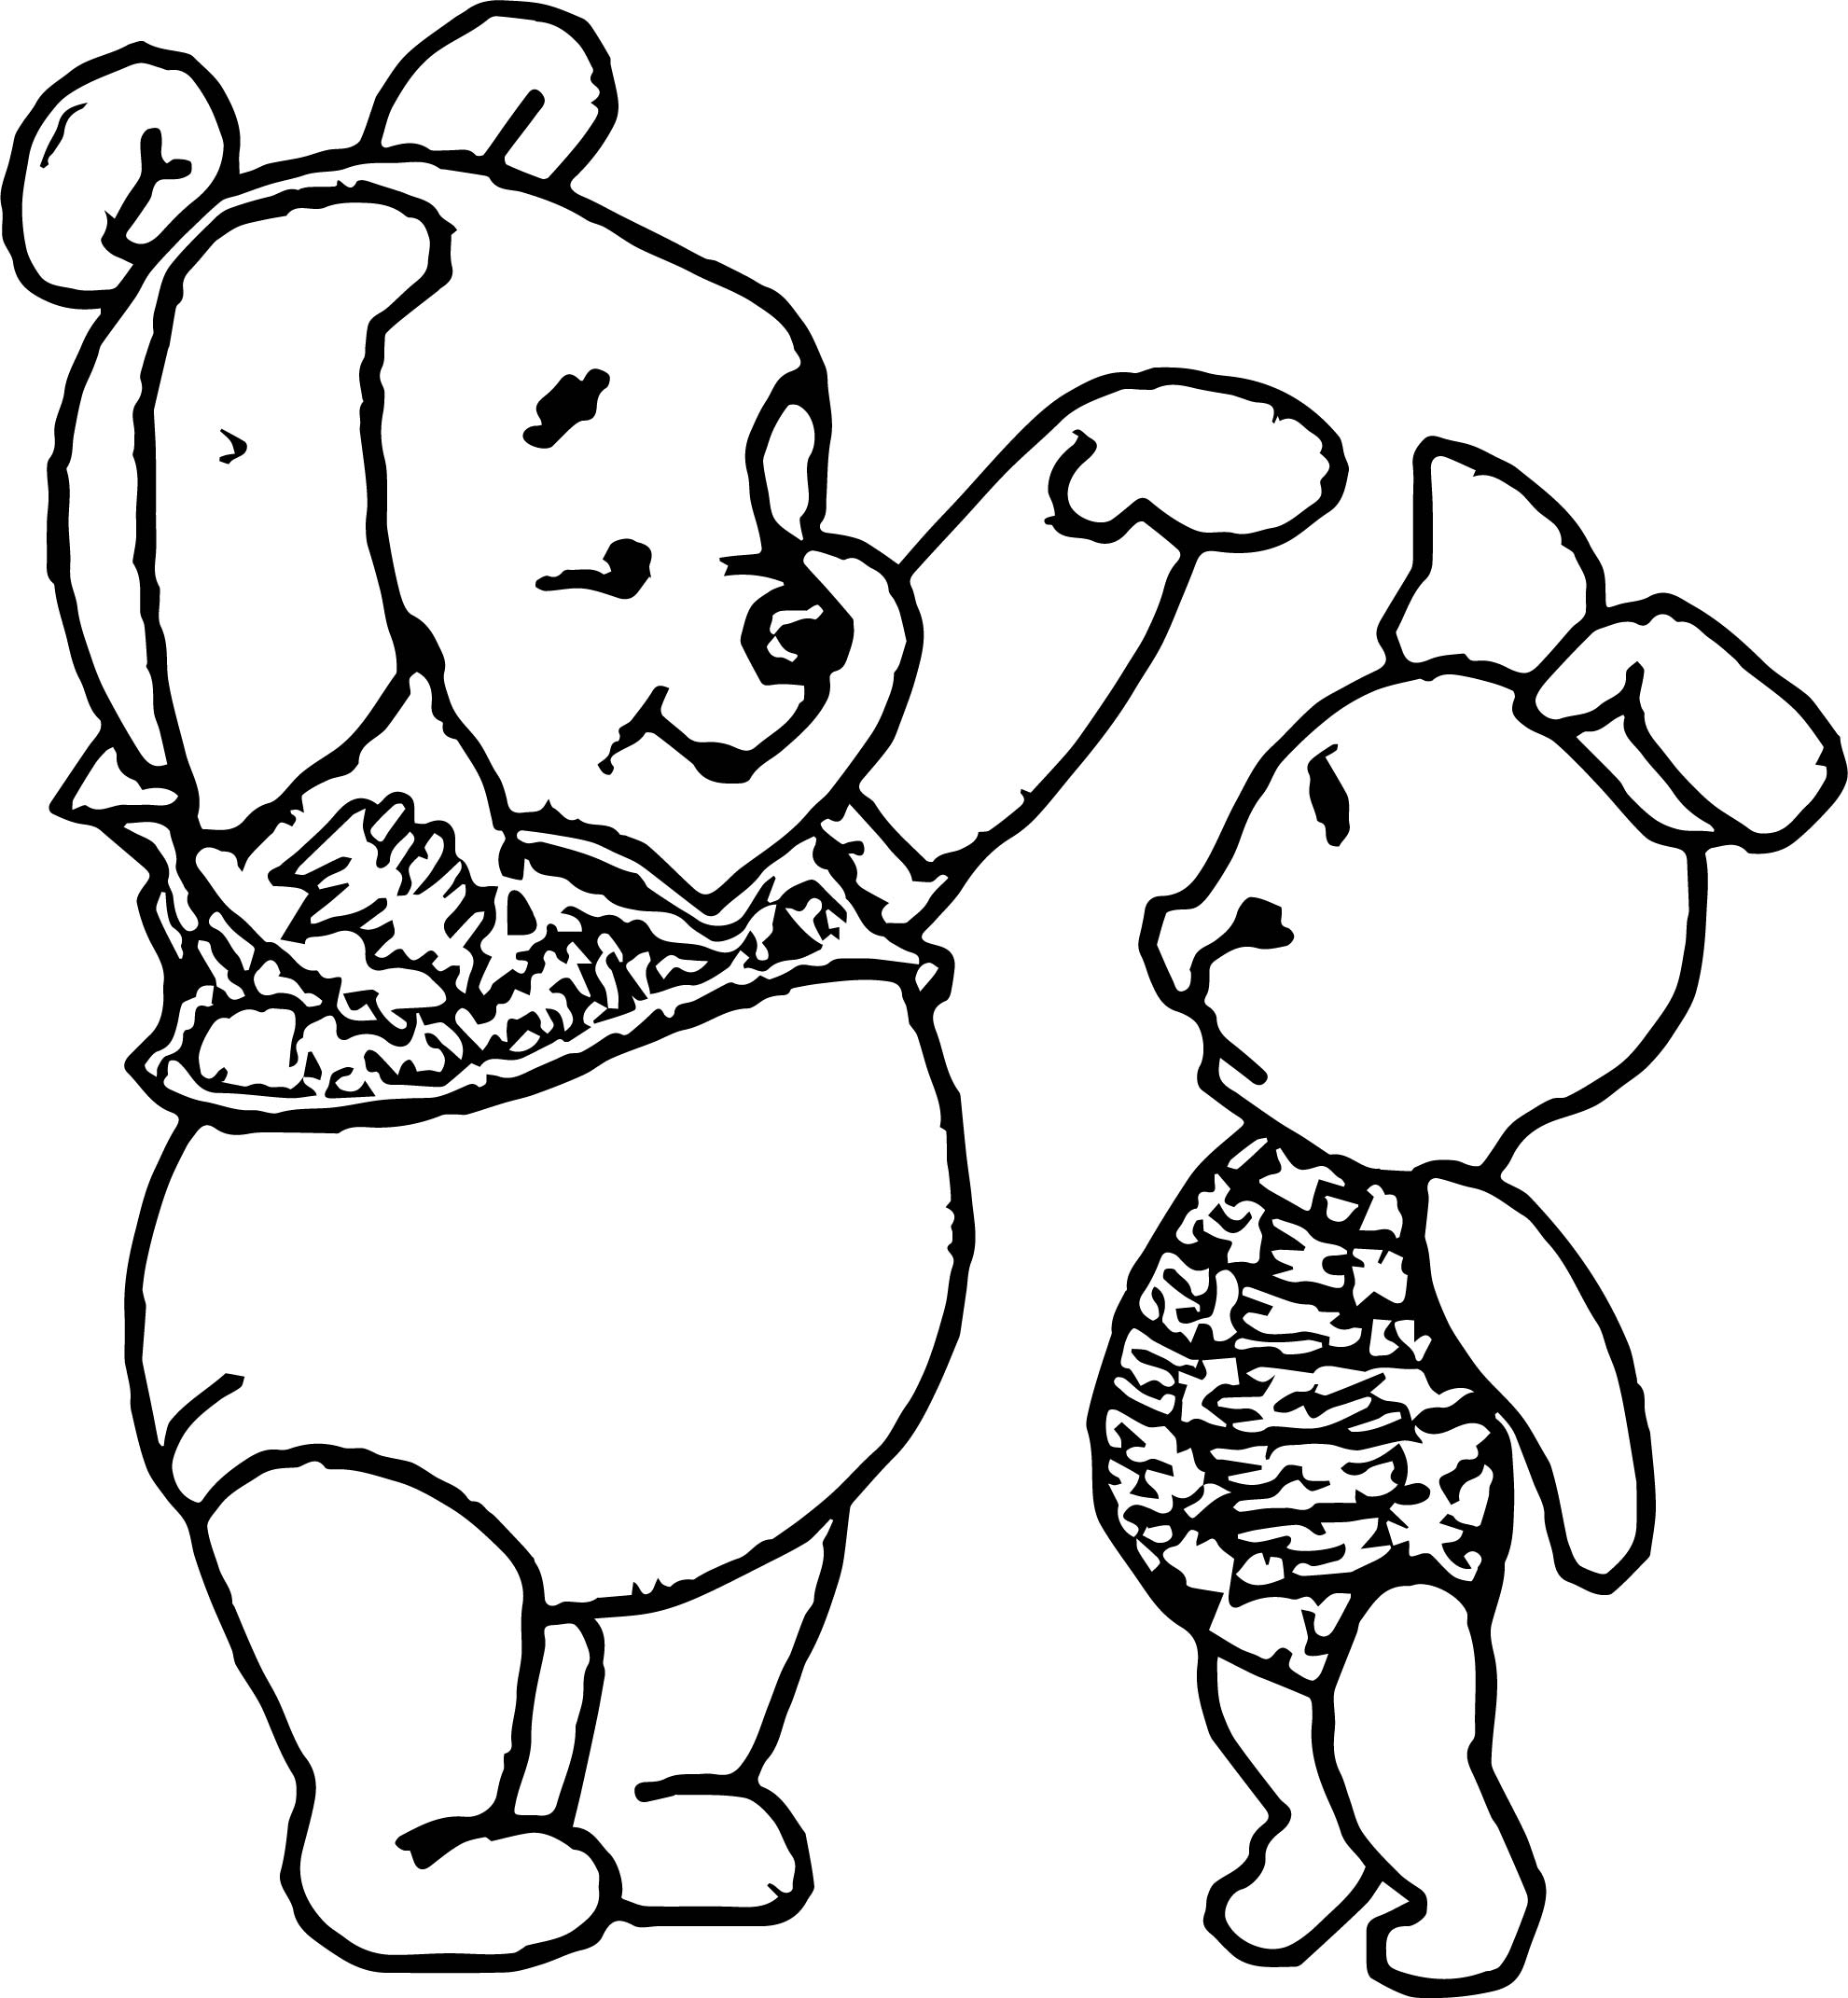 17104 Coloring Pages Cute Baby Animals Panda likewise How To Draw Cruella De Vil additionally Disney Animal Winnie Pooh Characters besides Baby Pooh And Tiger Coloring Page 428085 moreover Eeyore Christmas Coloring Pages. on baby eeyore coloring pages